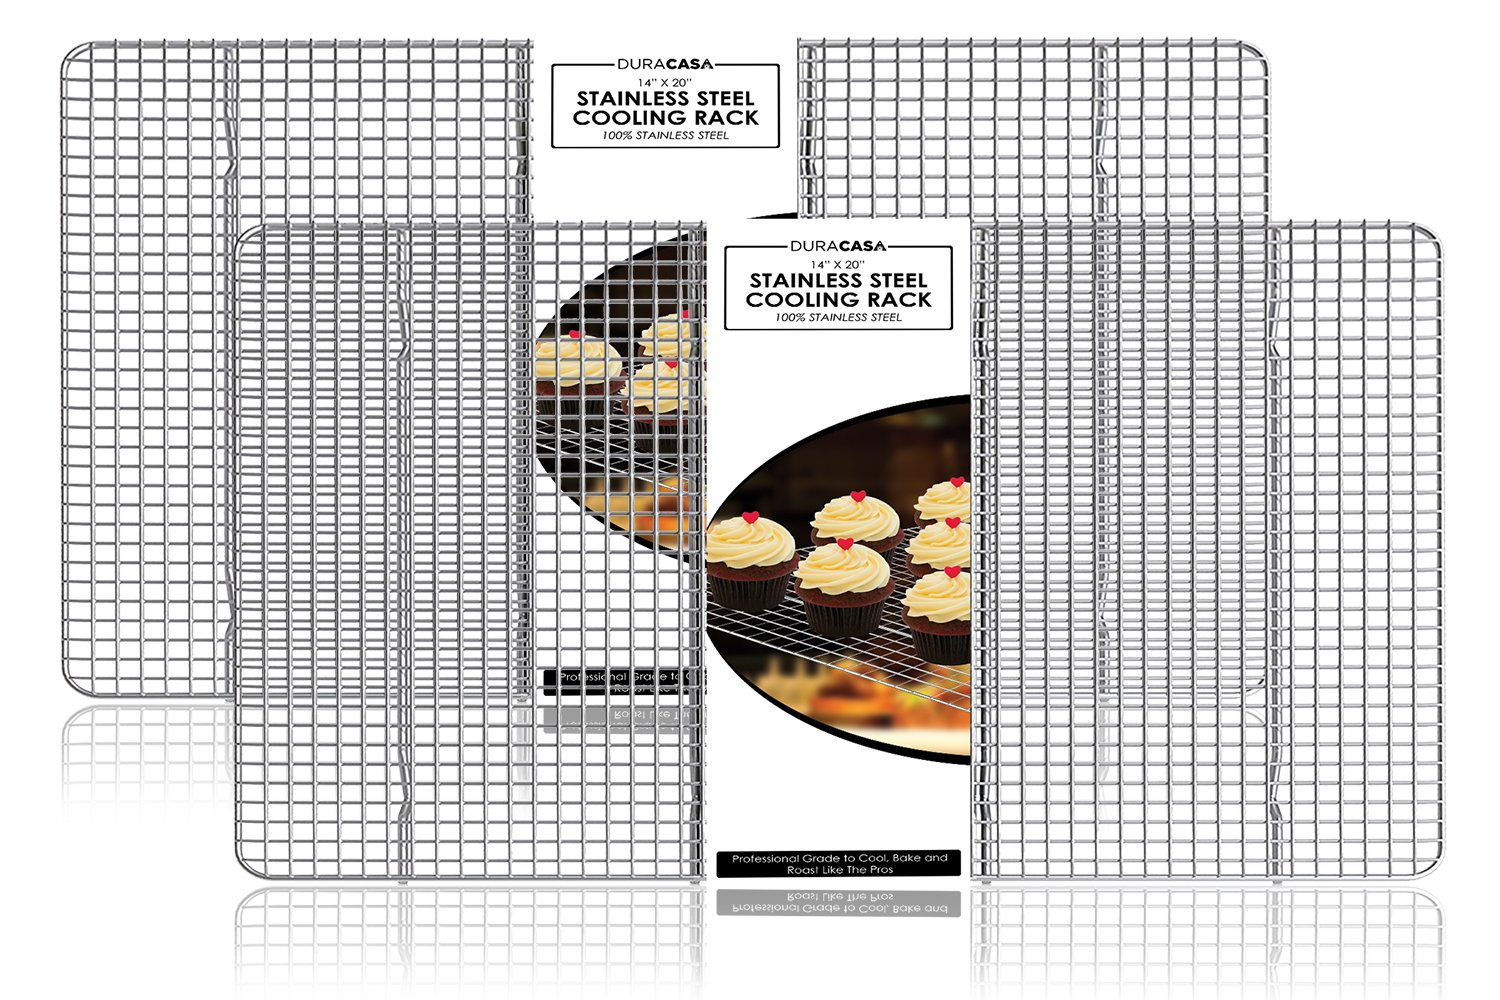 Baking Rack, Cooling Rack, TWIN SET OF 14'' X 20'' Stainless Steel 304 Grade Roasting Rack - Heavy Duty Oven Safe, Commercial Quality Cooling Racks For Baking (14'' X 20'')